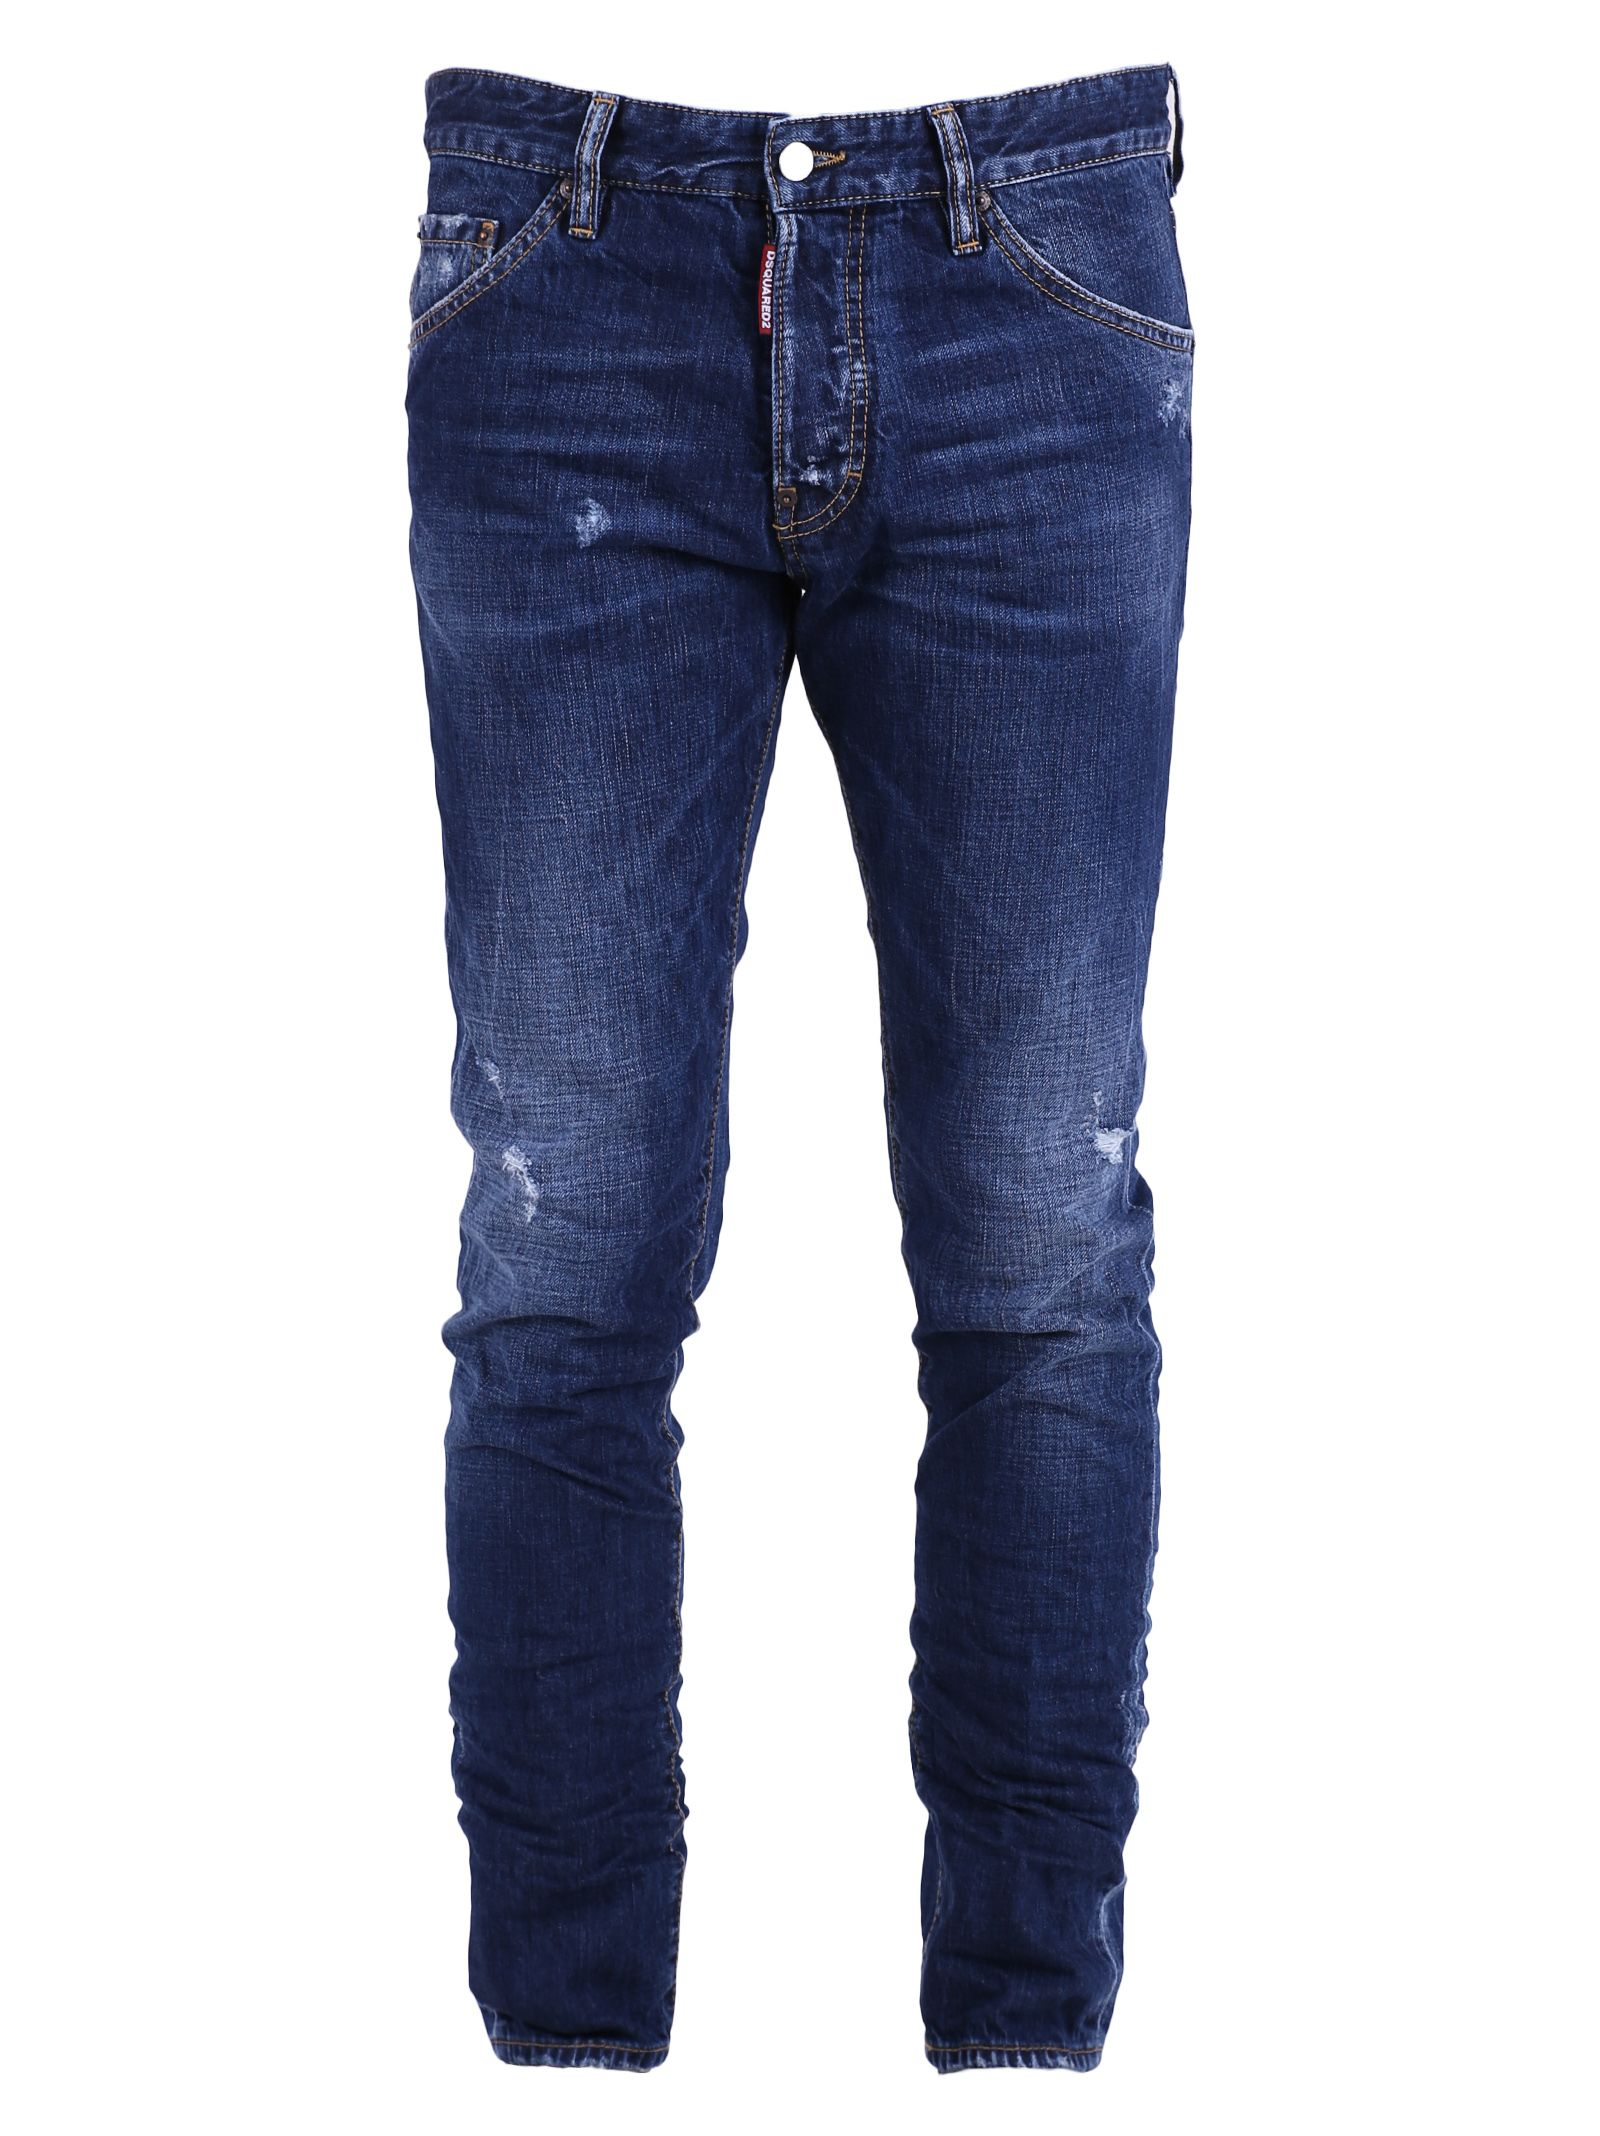 Blue Distressed Jeans 10521621